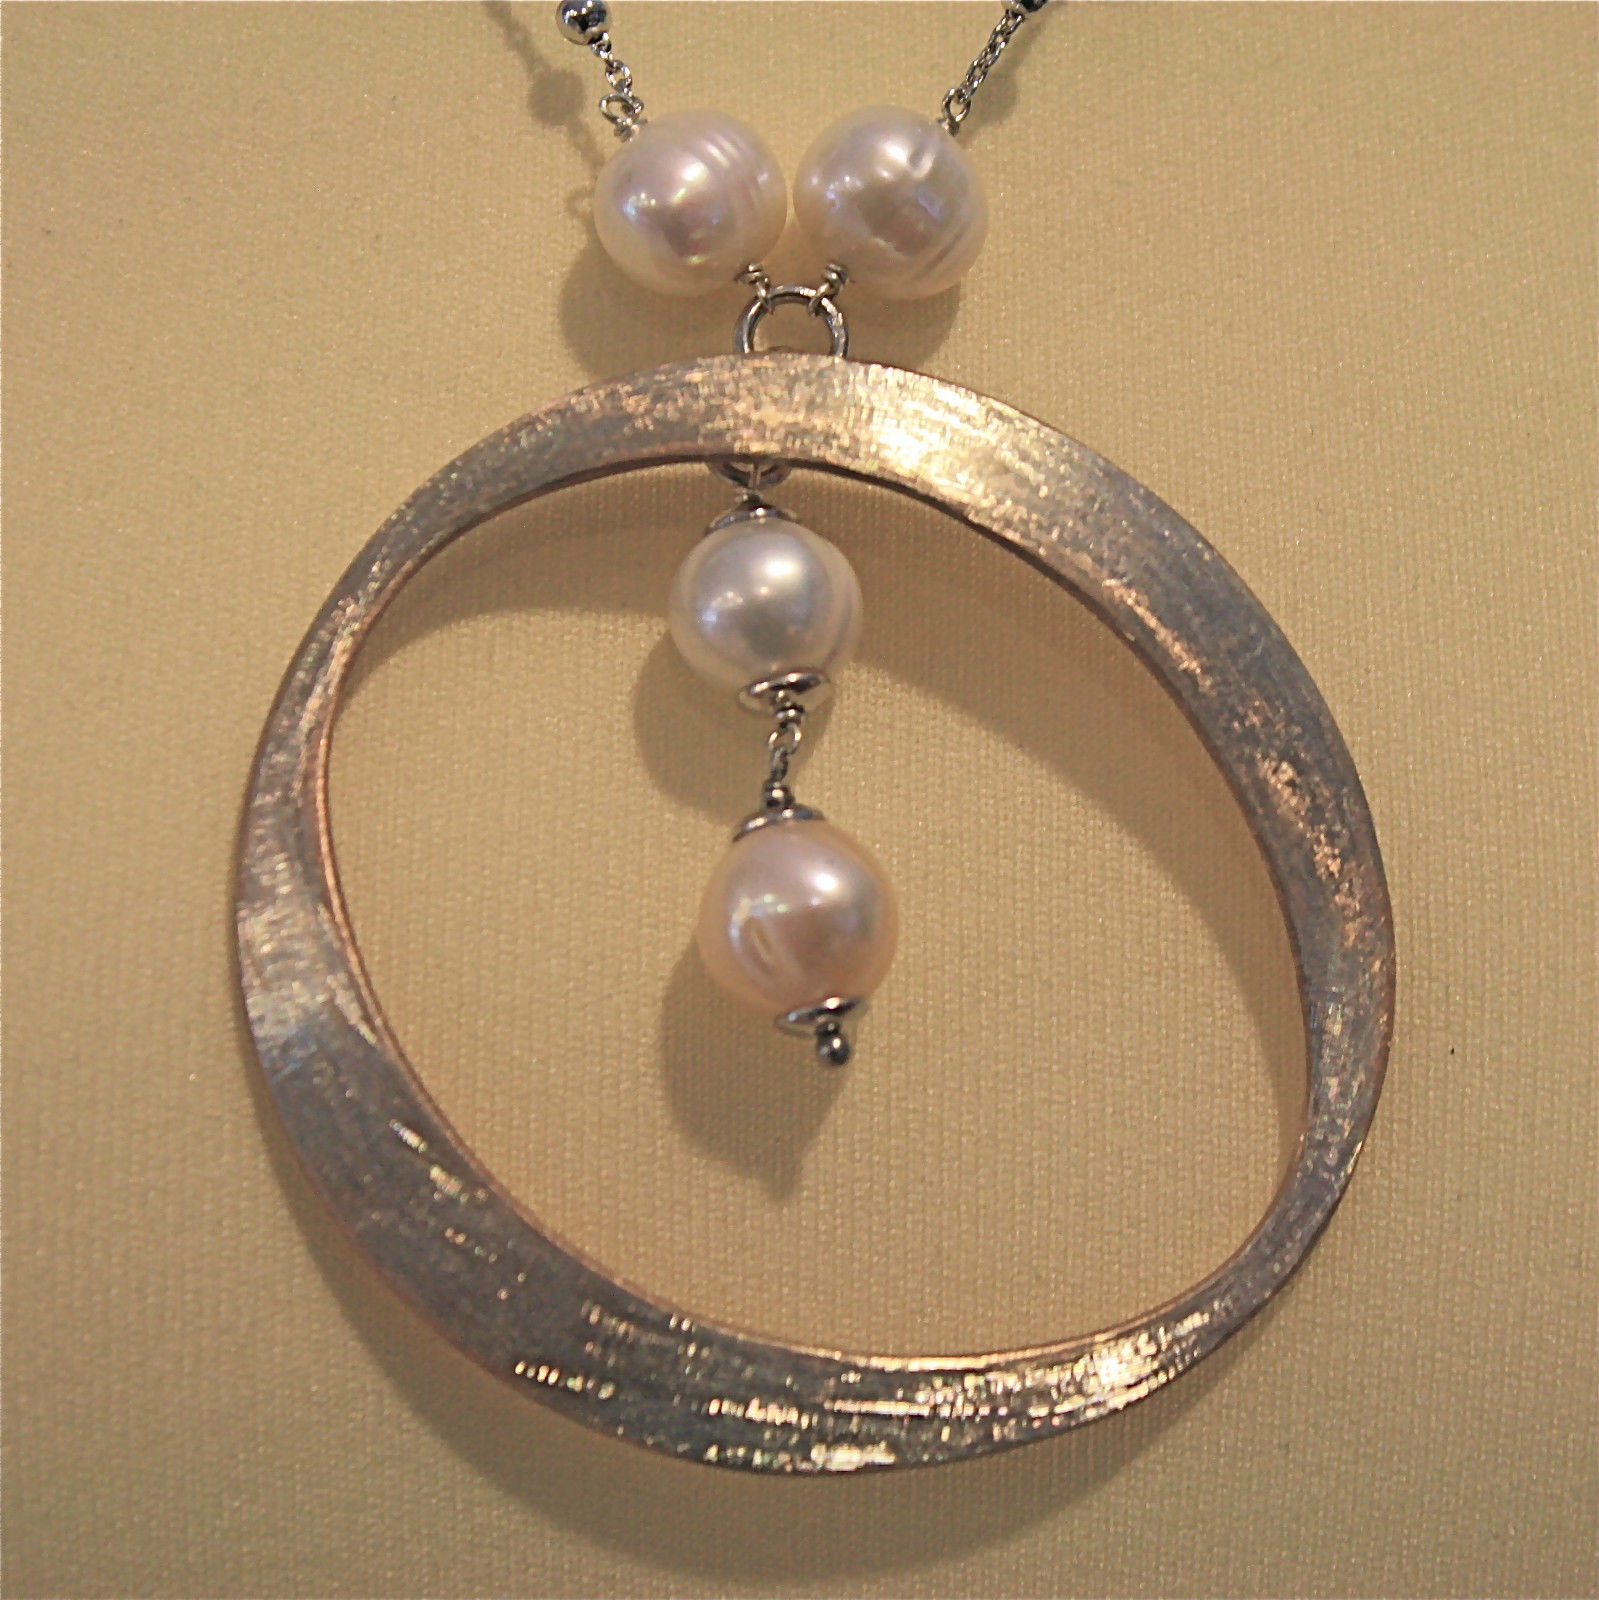 .925 SILVER RHODIUM NECKLACE WITH 10 MM FRESHWATER WHITE PEARLS, 19.69 IN LENGHT